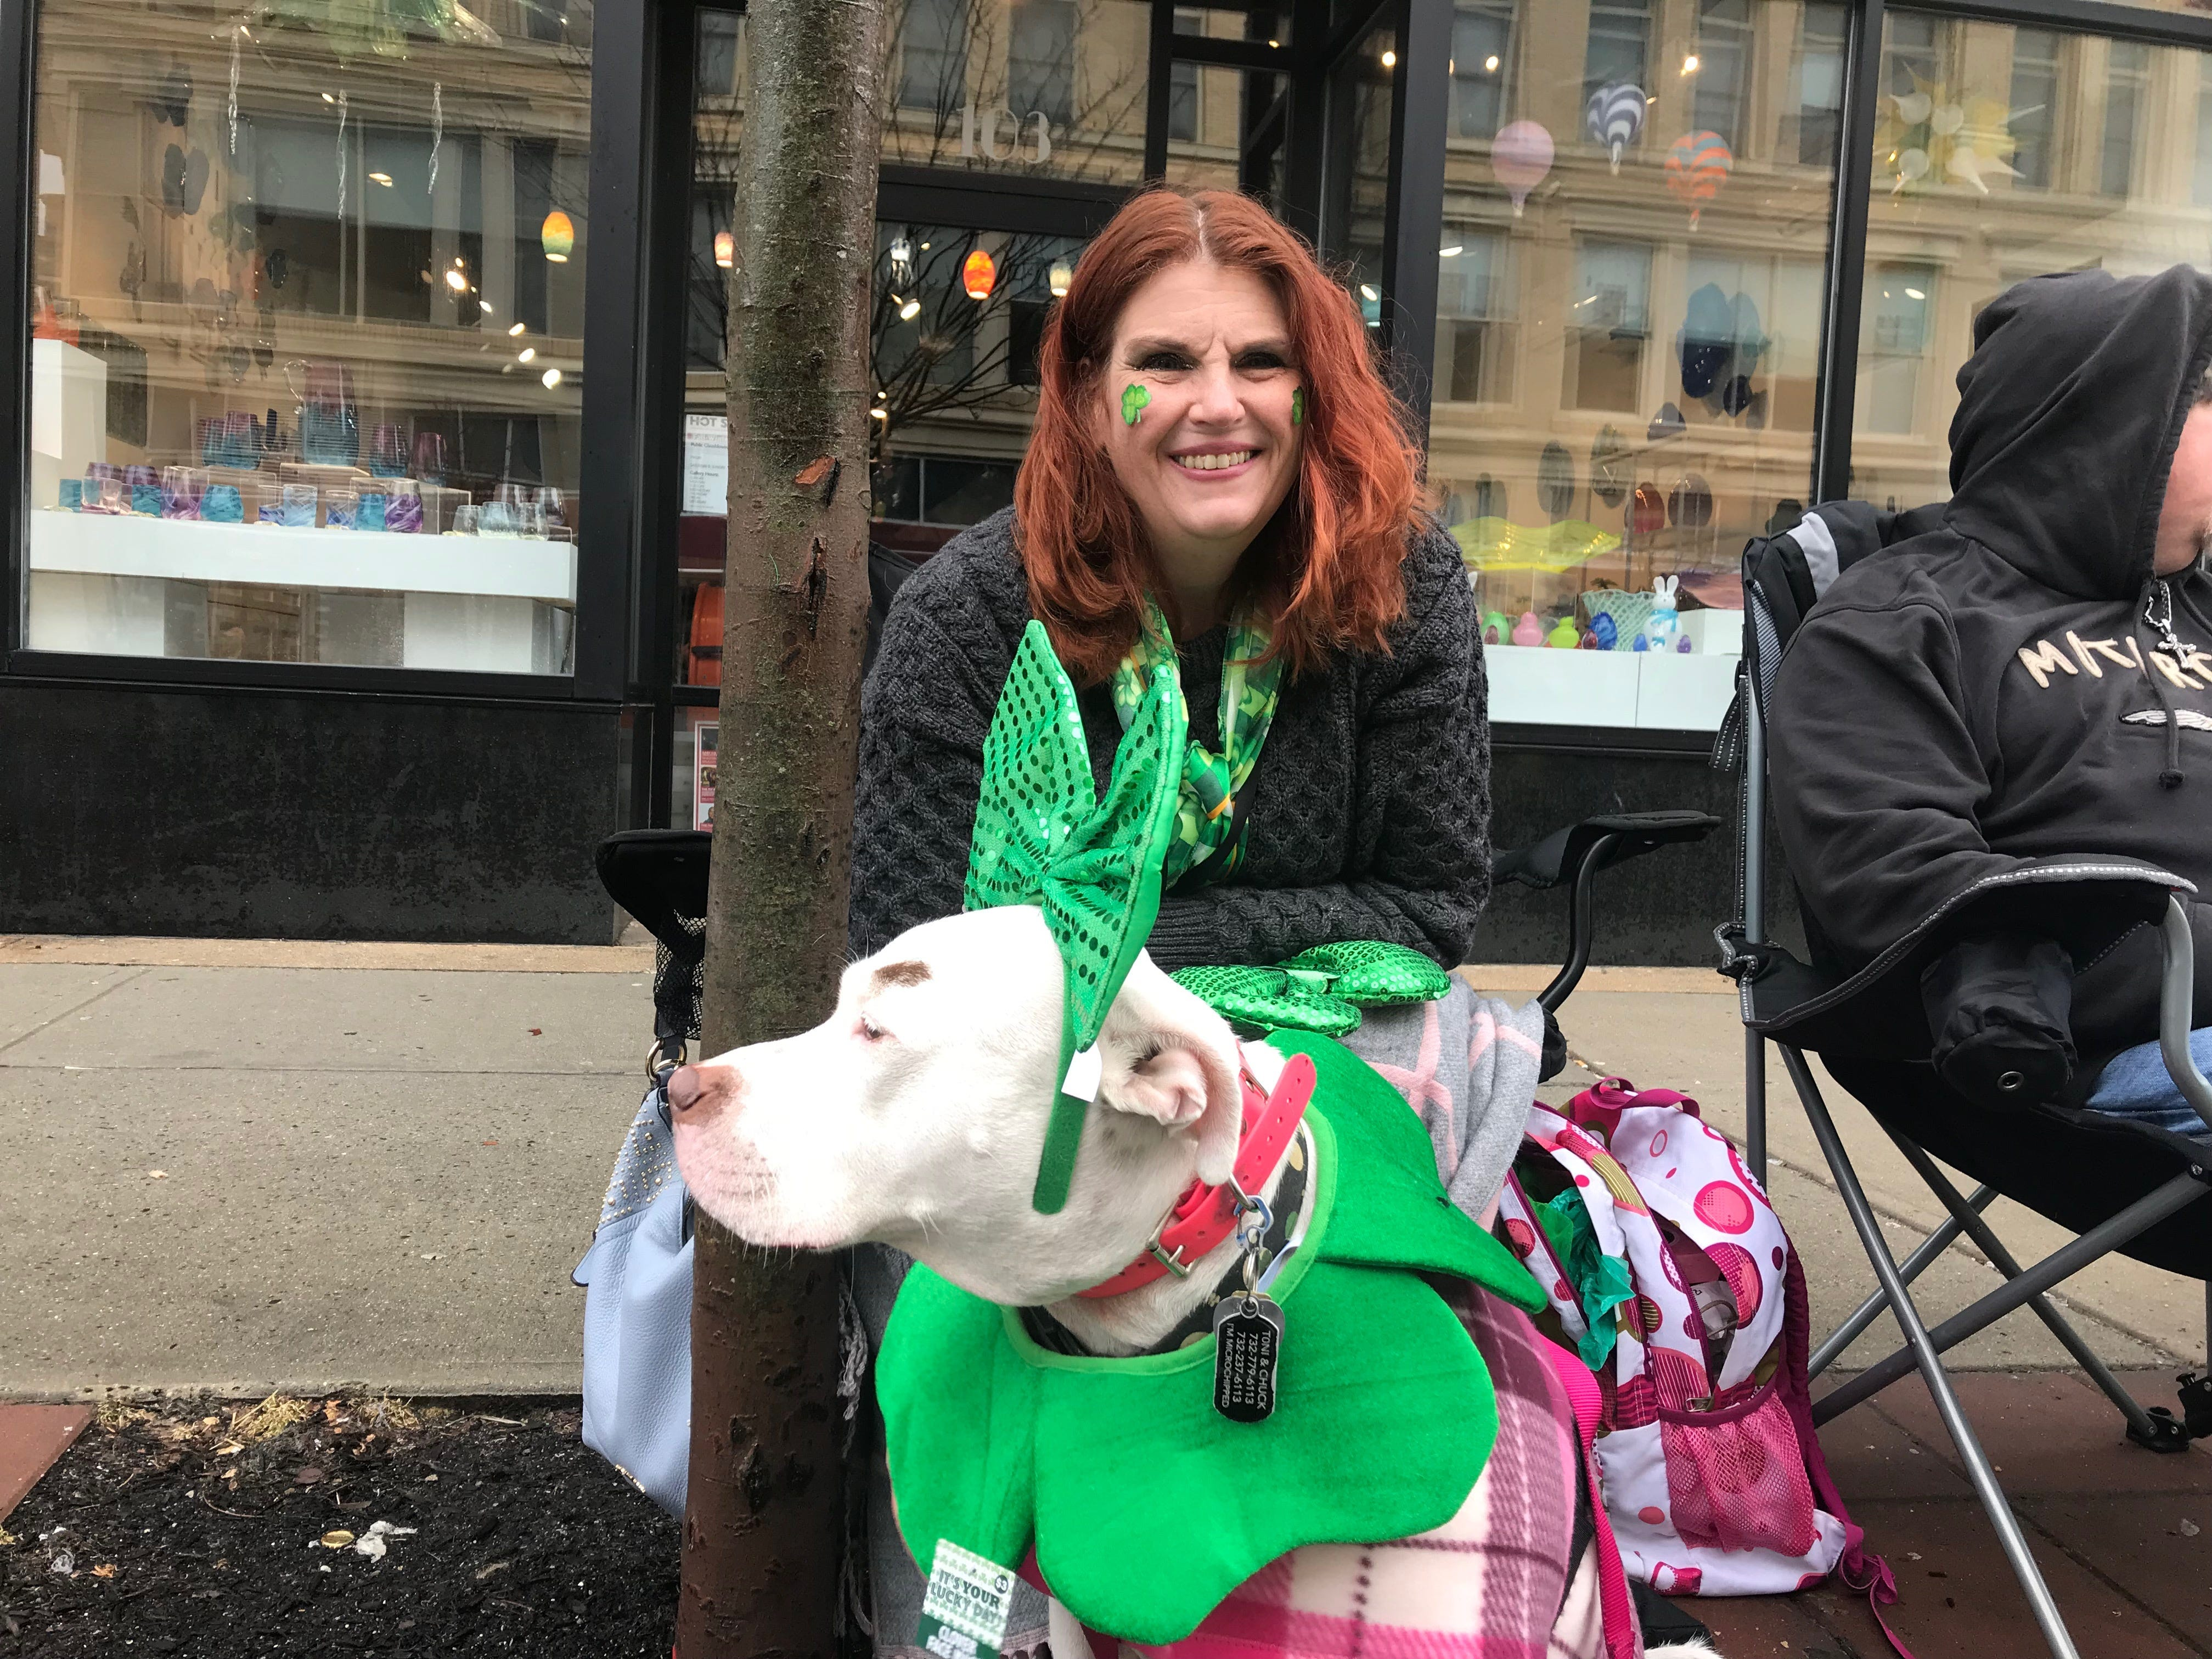 Toni Fredrickson of Toms River poses with her dog Tillie on Cookman Avenue.